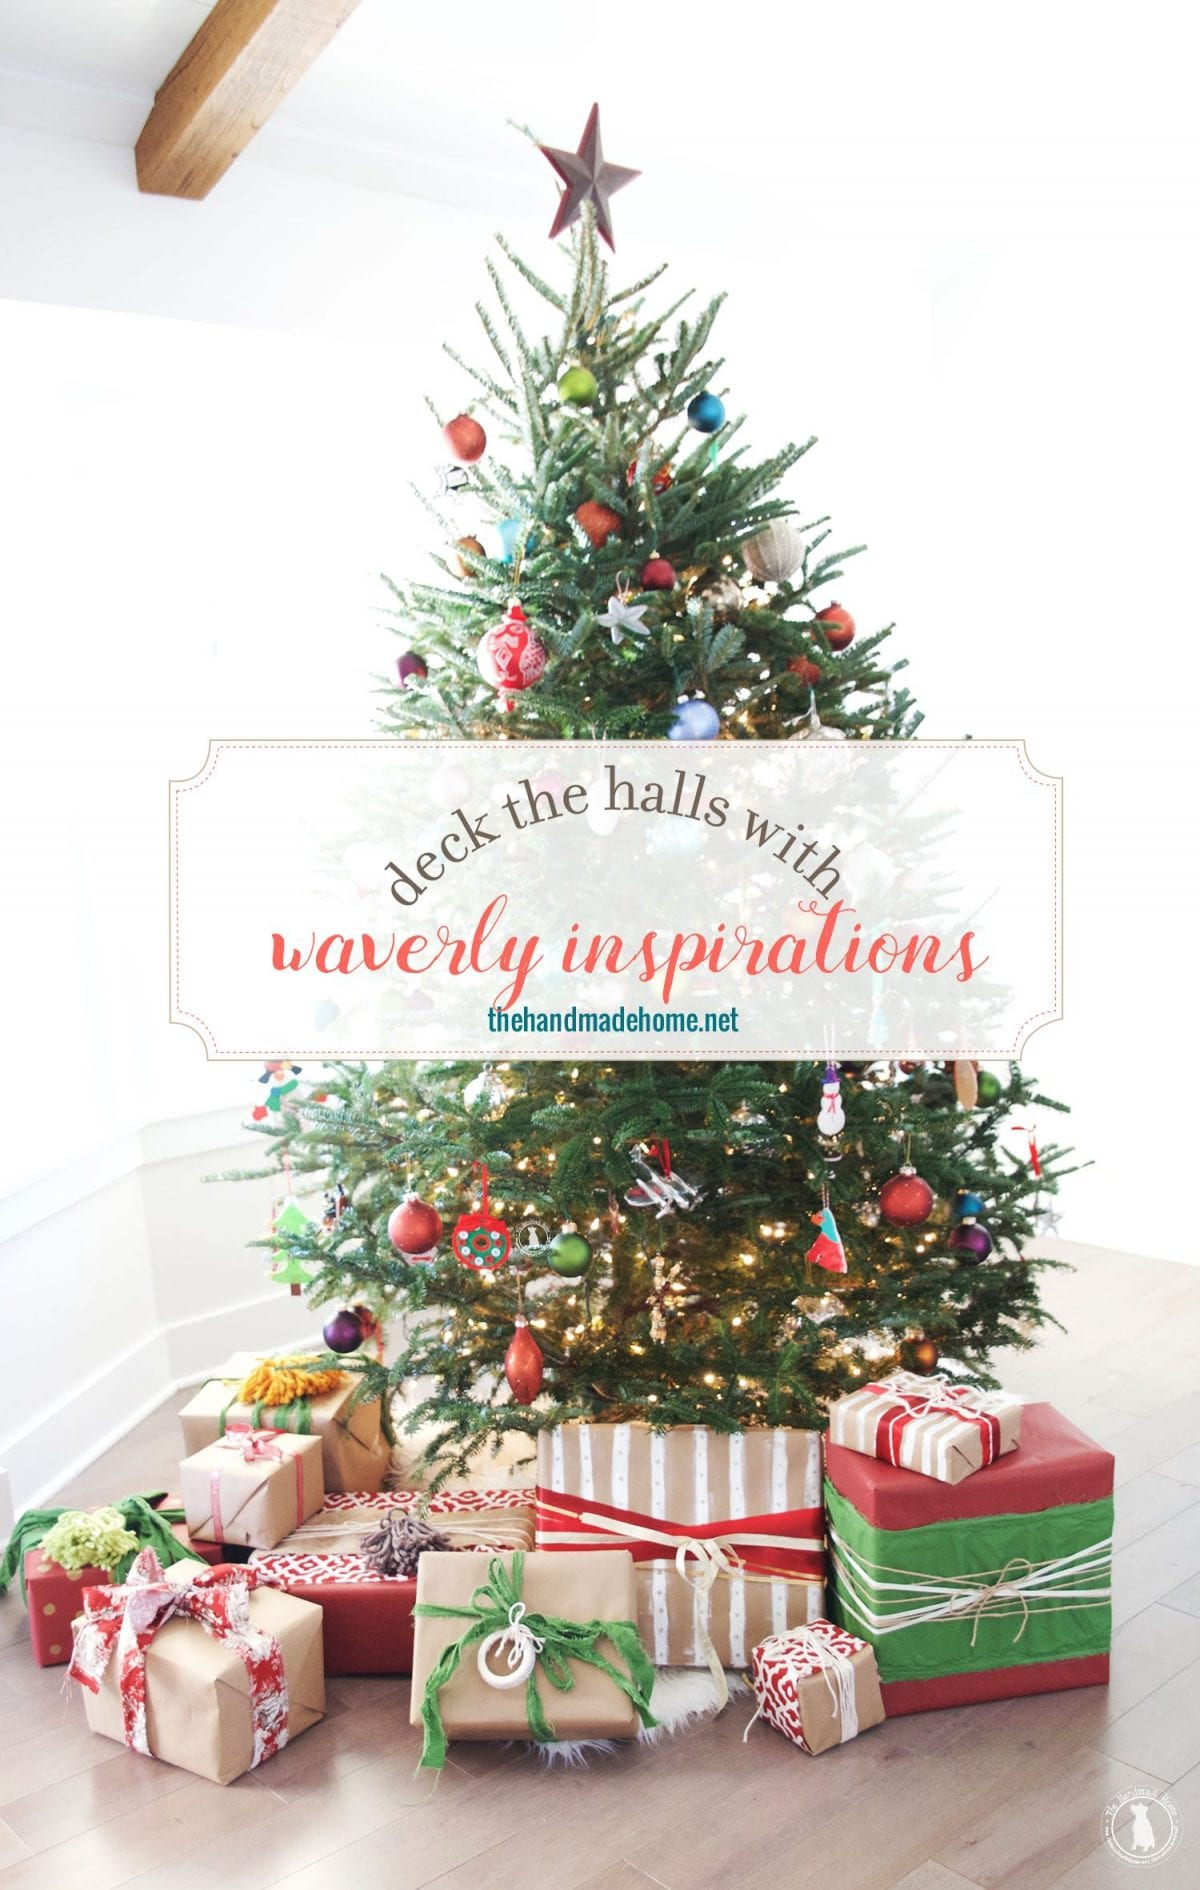 deck_the_halls-waverly_inspirations